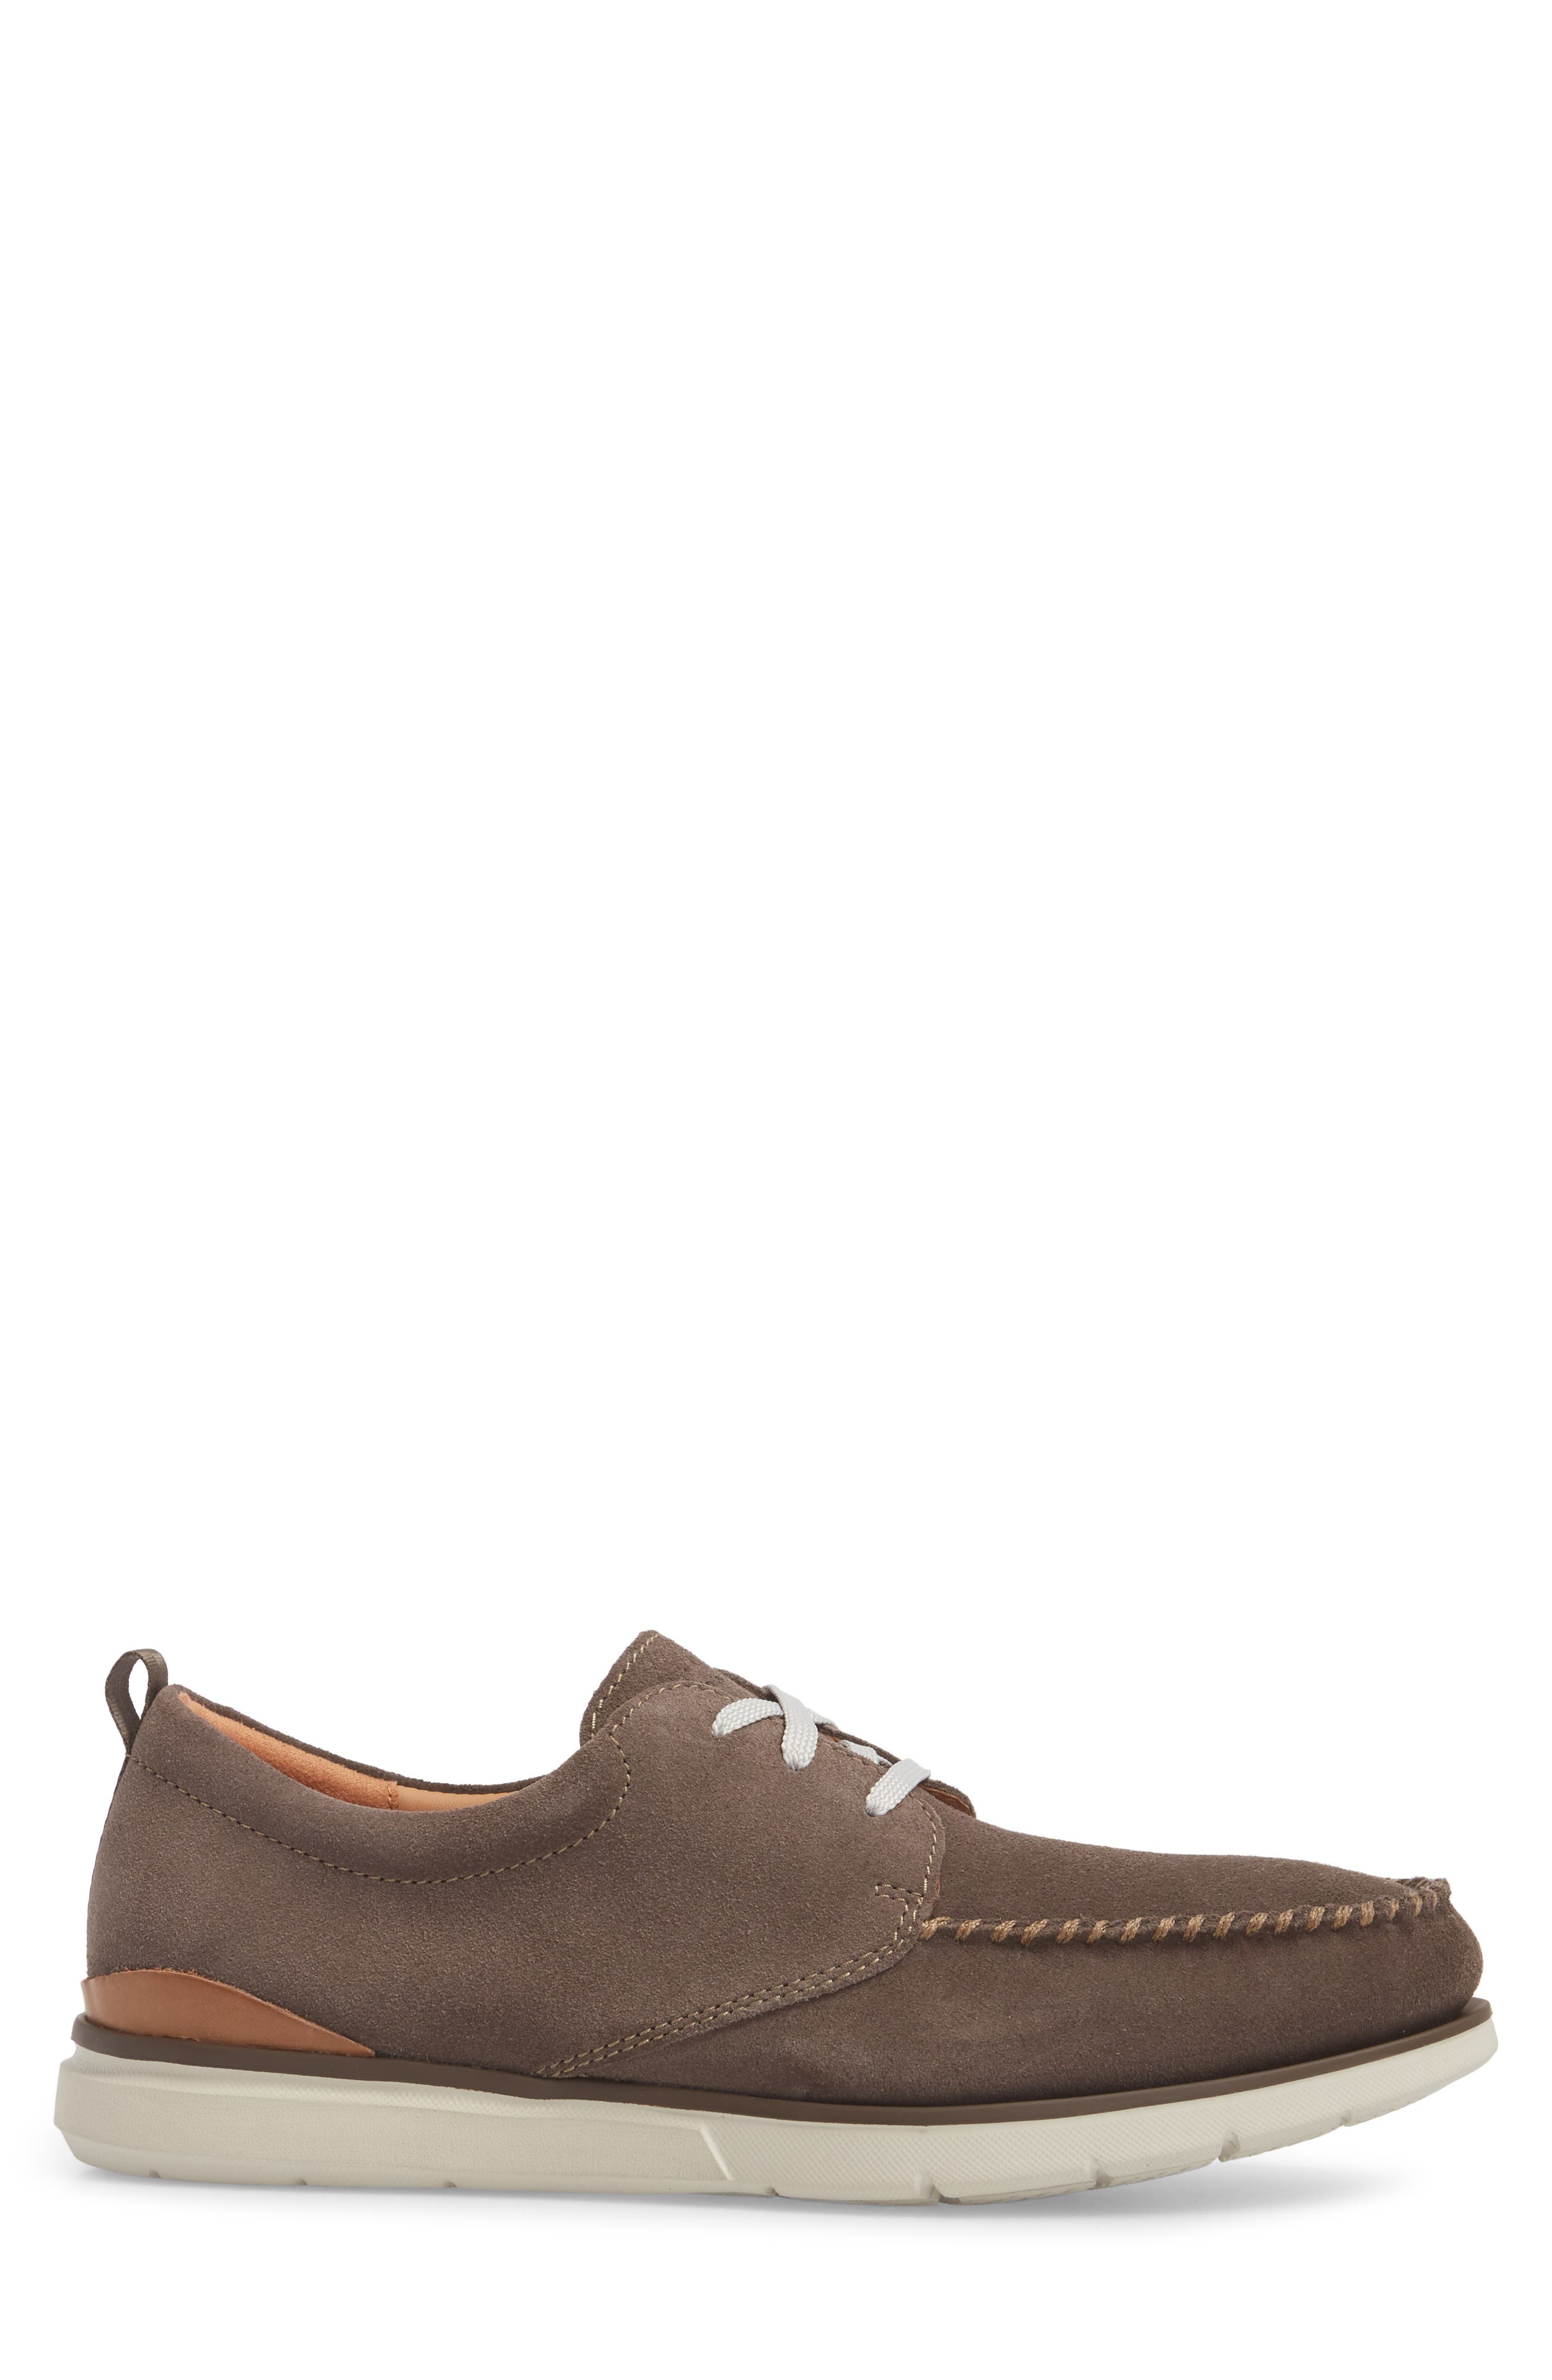 Edgewood Mix Moc Toe Derby,                             Alternate thumbnail 3, color,                             Taupe Suede